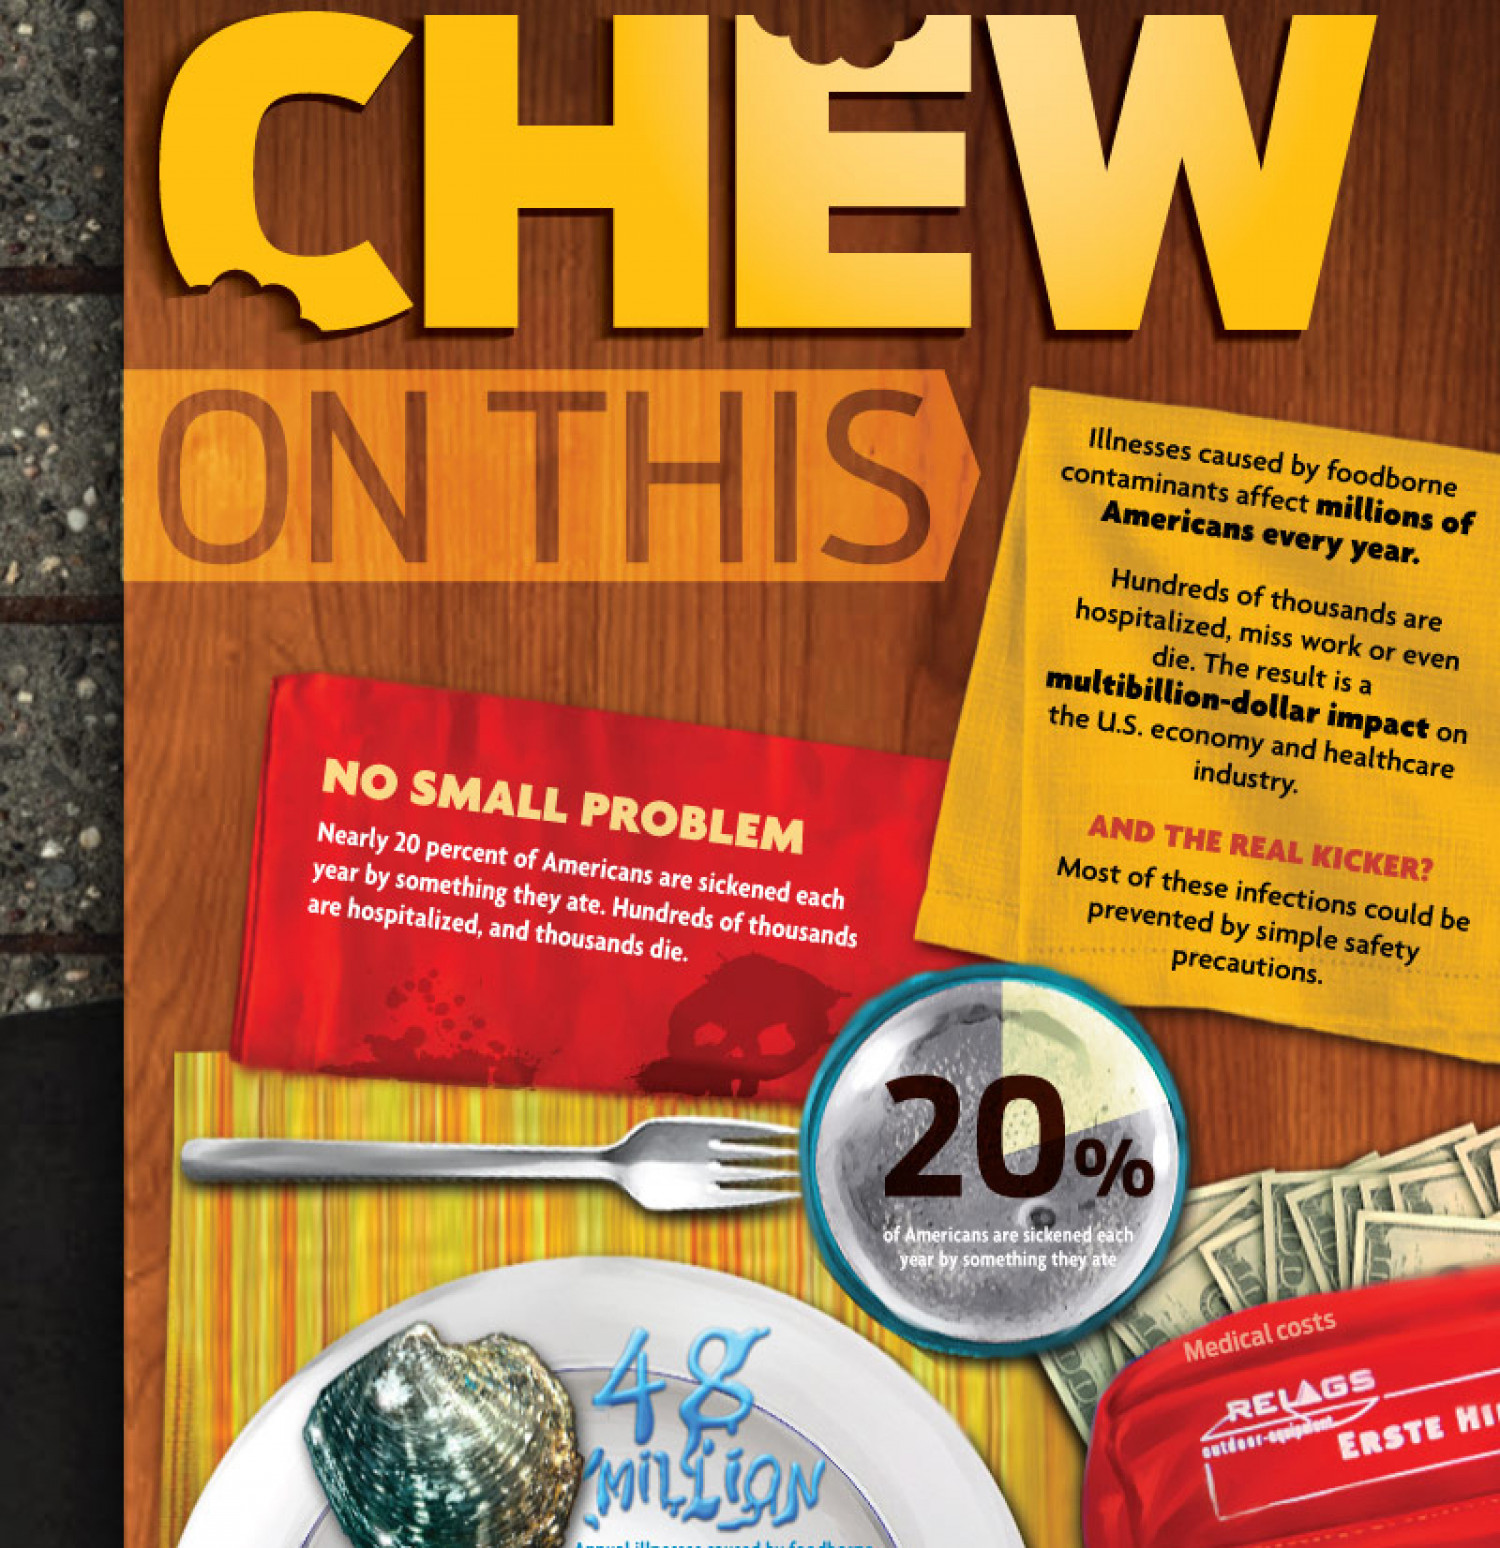 Chew On This Infographic